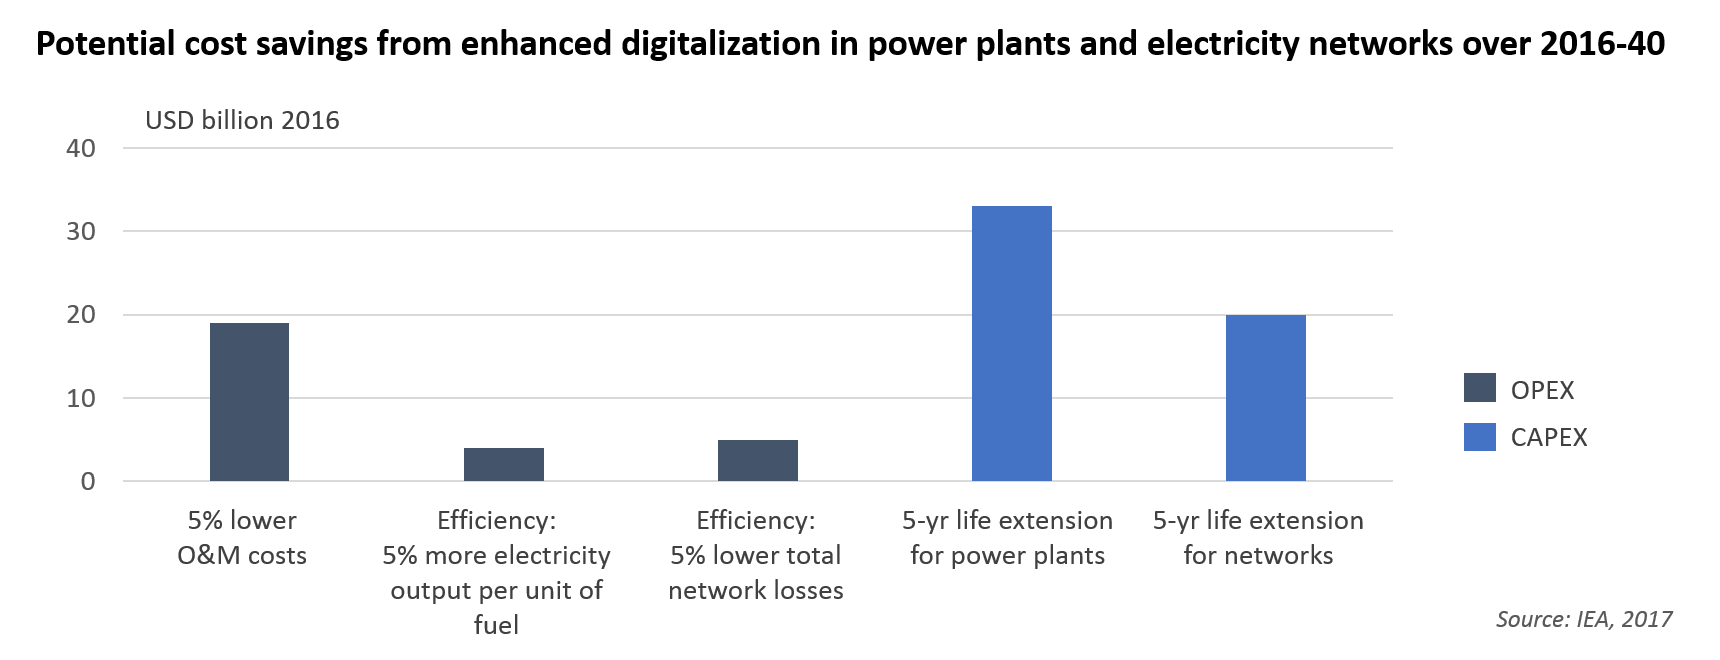 Potential cost savings from enhanced digitalization in power plants and electricity networks over 2016-40